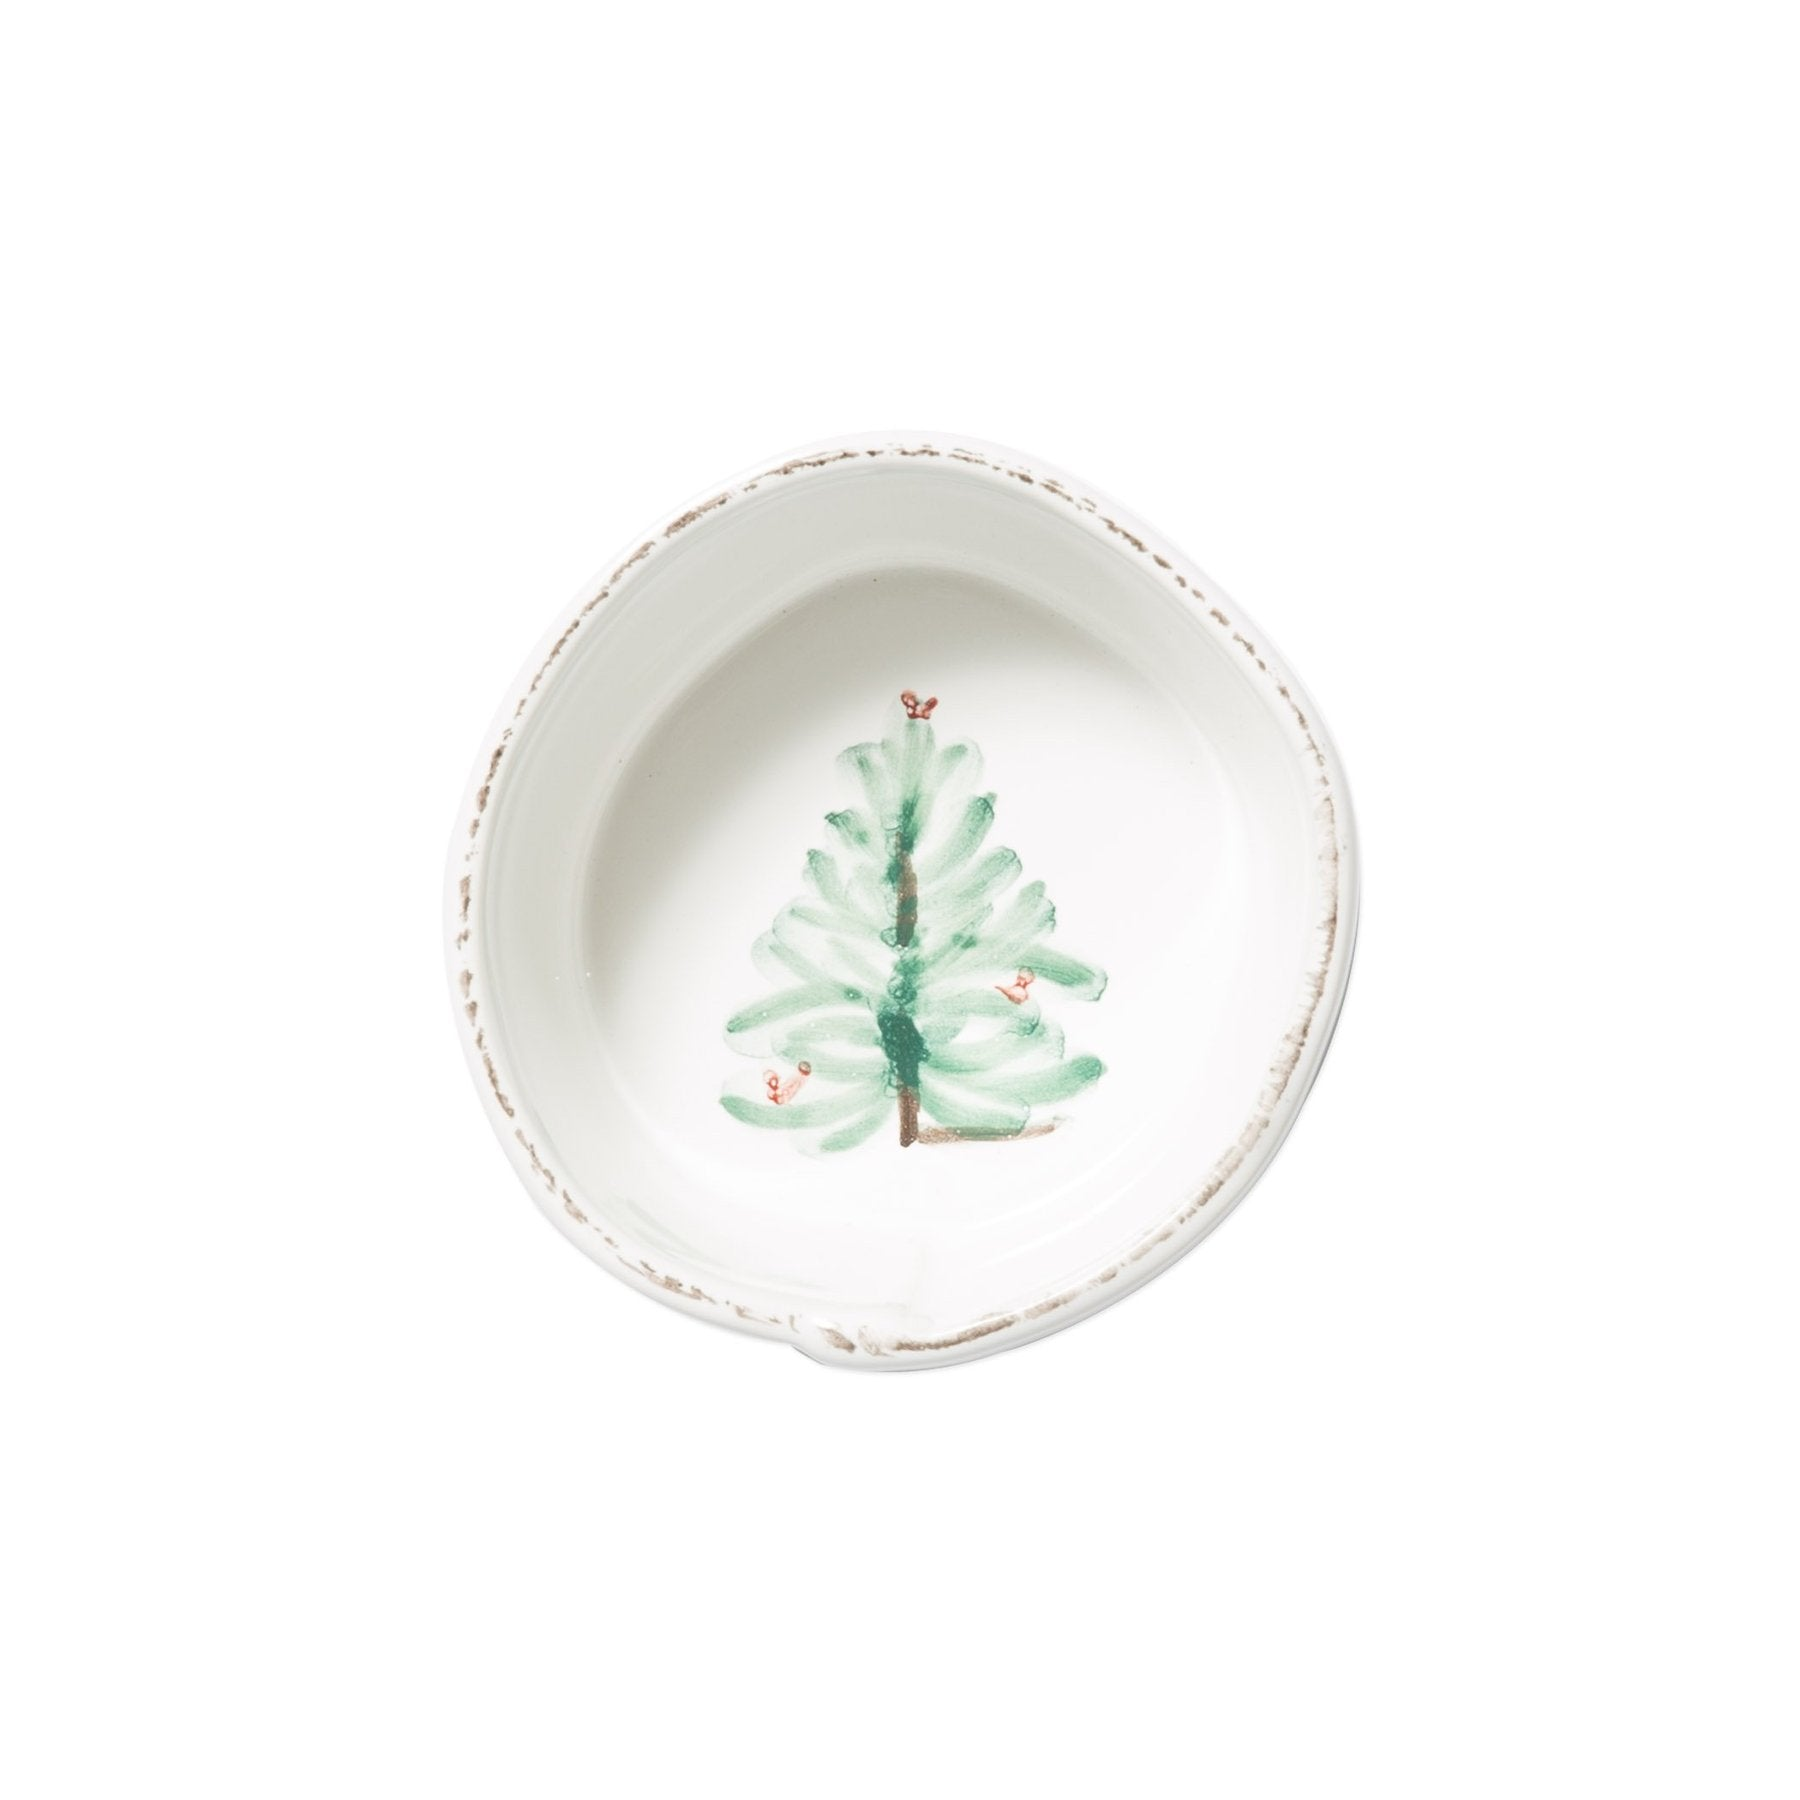 Lastra Holiday Condiment Bowl